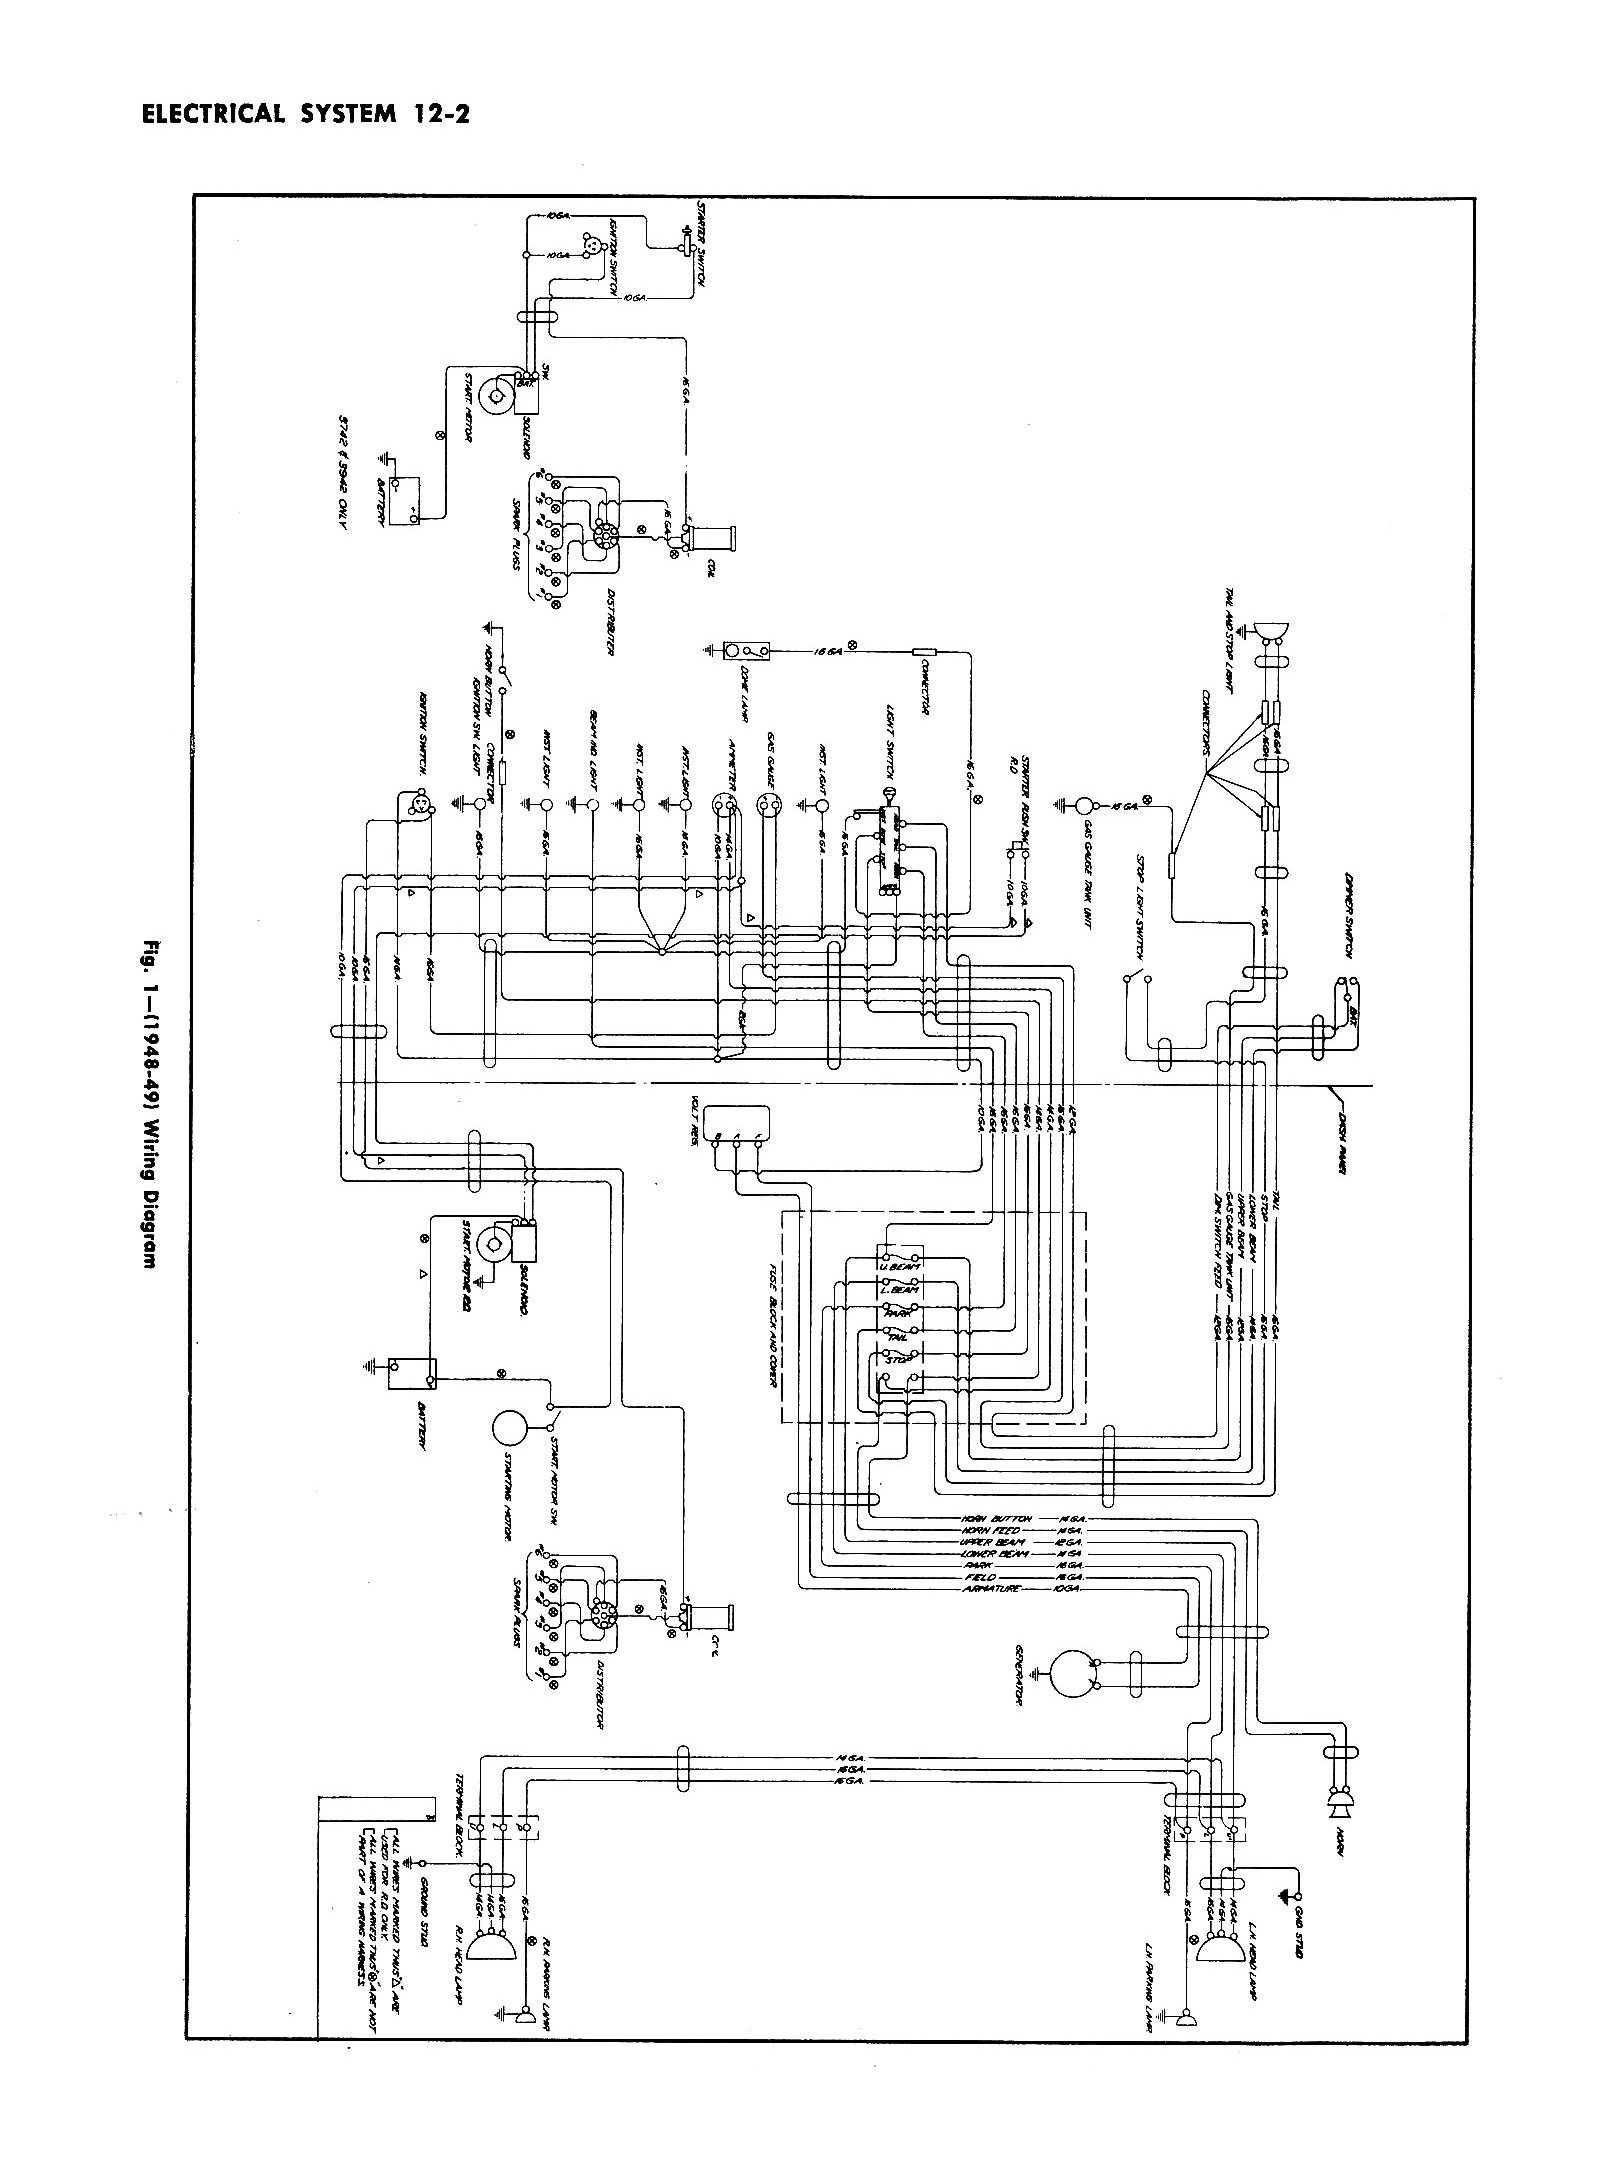 hight resolution of wiring diagram for 1960 gmc truck wiring diagram log 1968 gmc truck wiring diagram gmc truck wiring